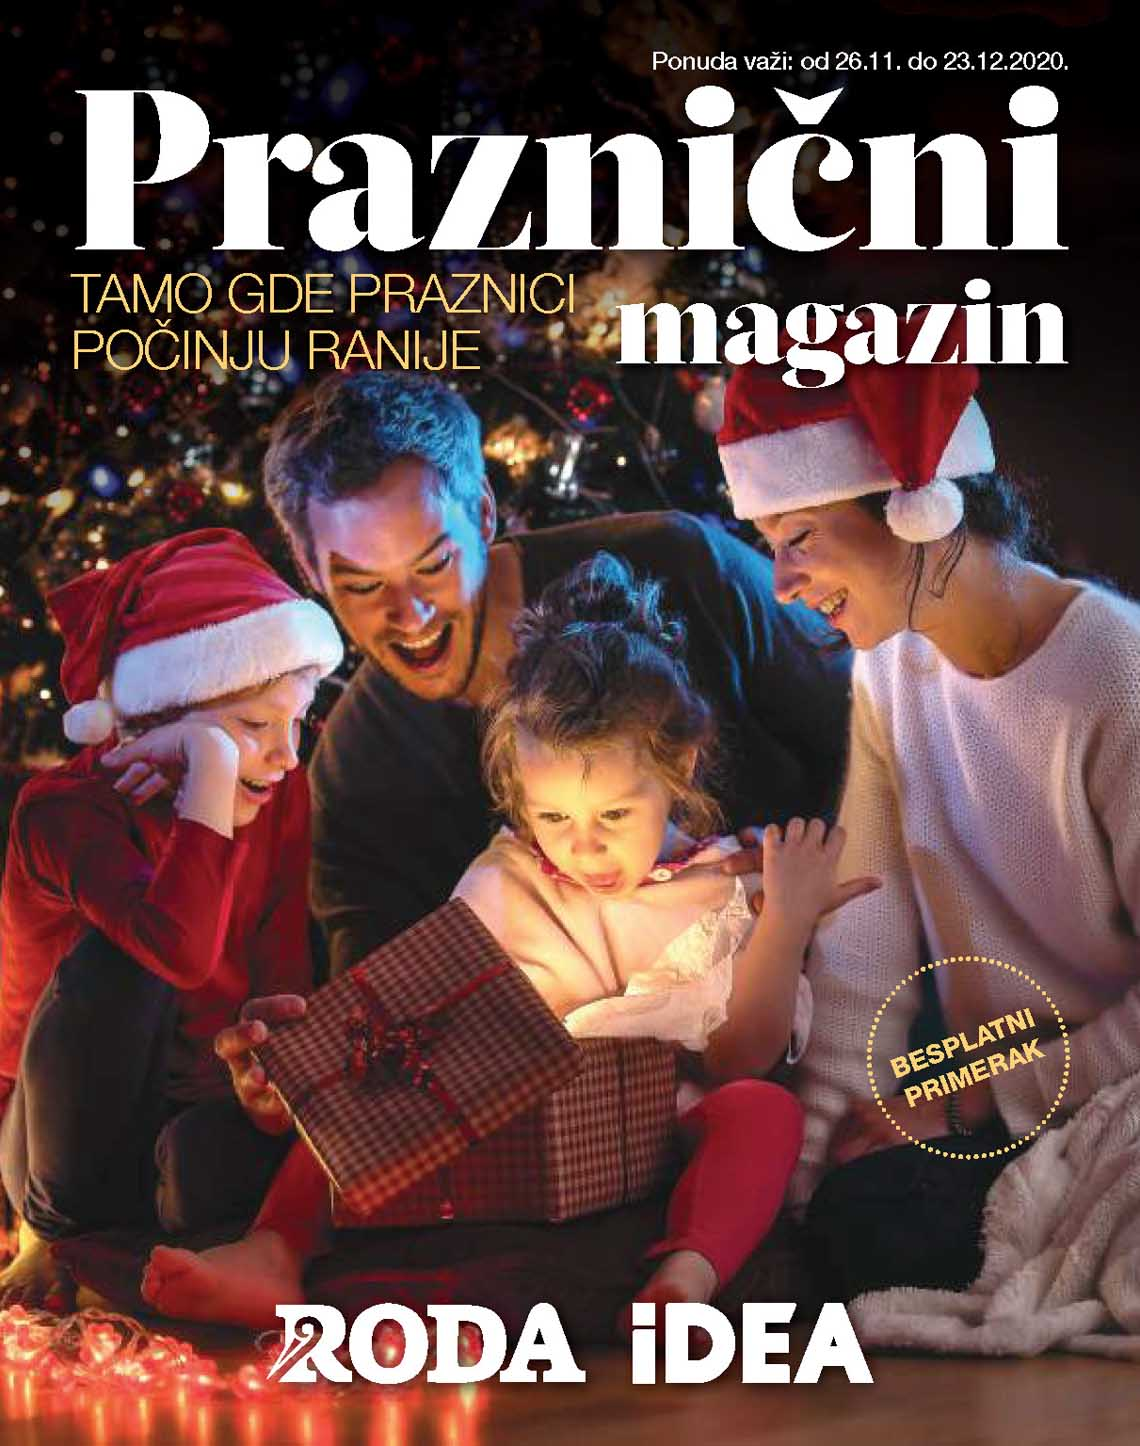 IDEA - RODA PRAZNIČNI MAGAZIN - Super akcija do 23.12.2020.